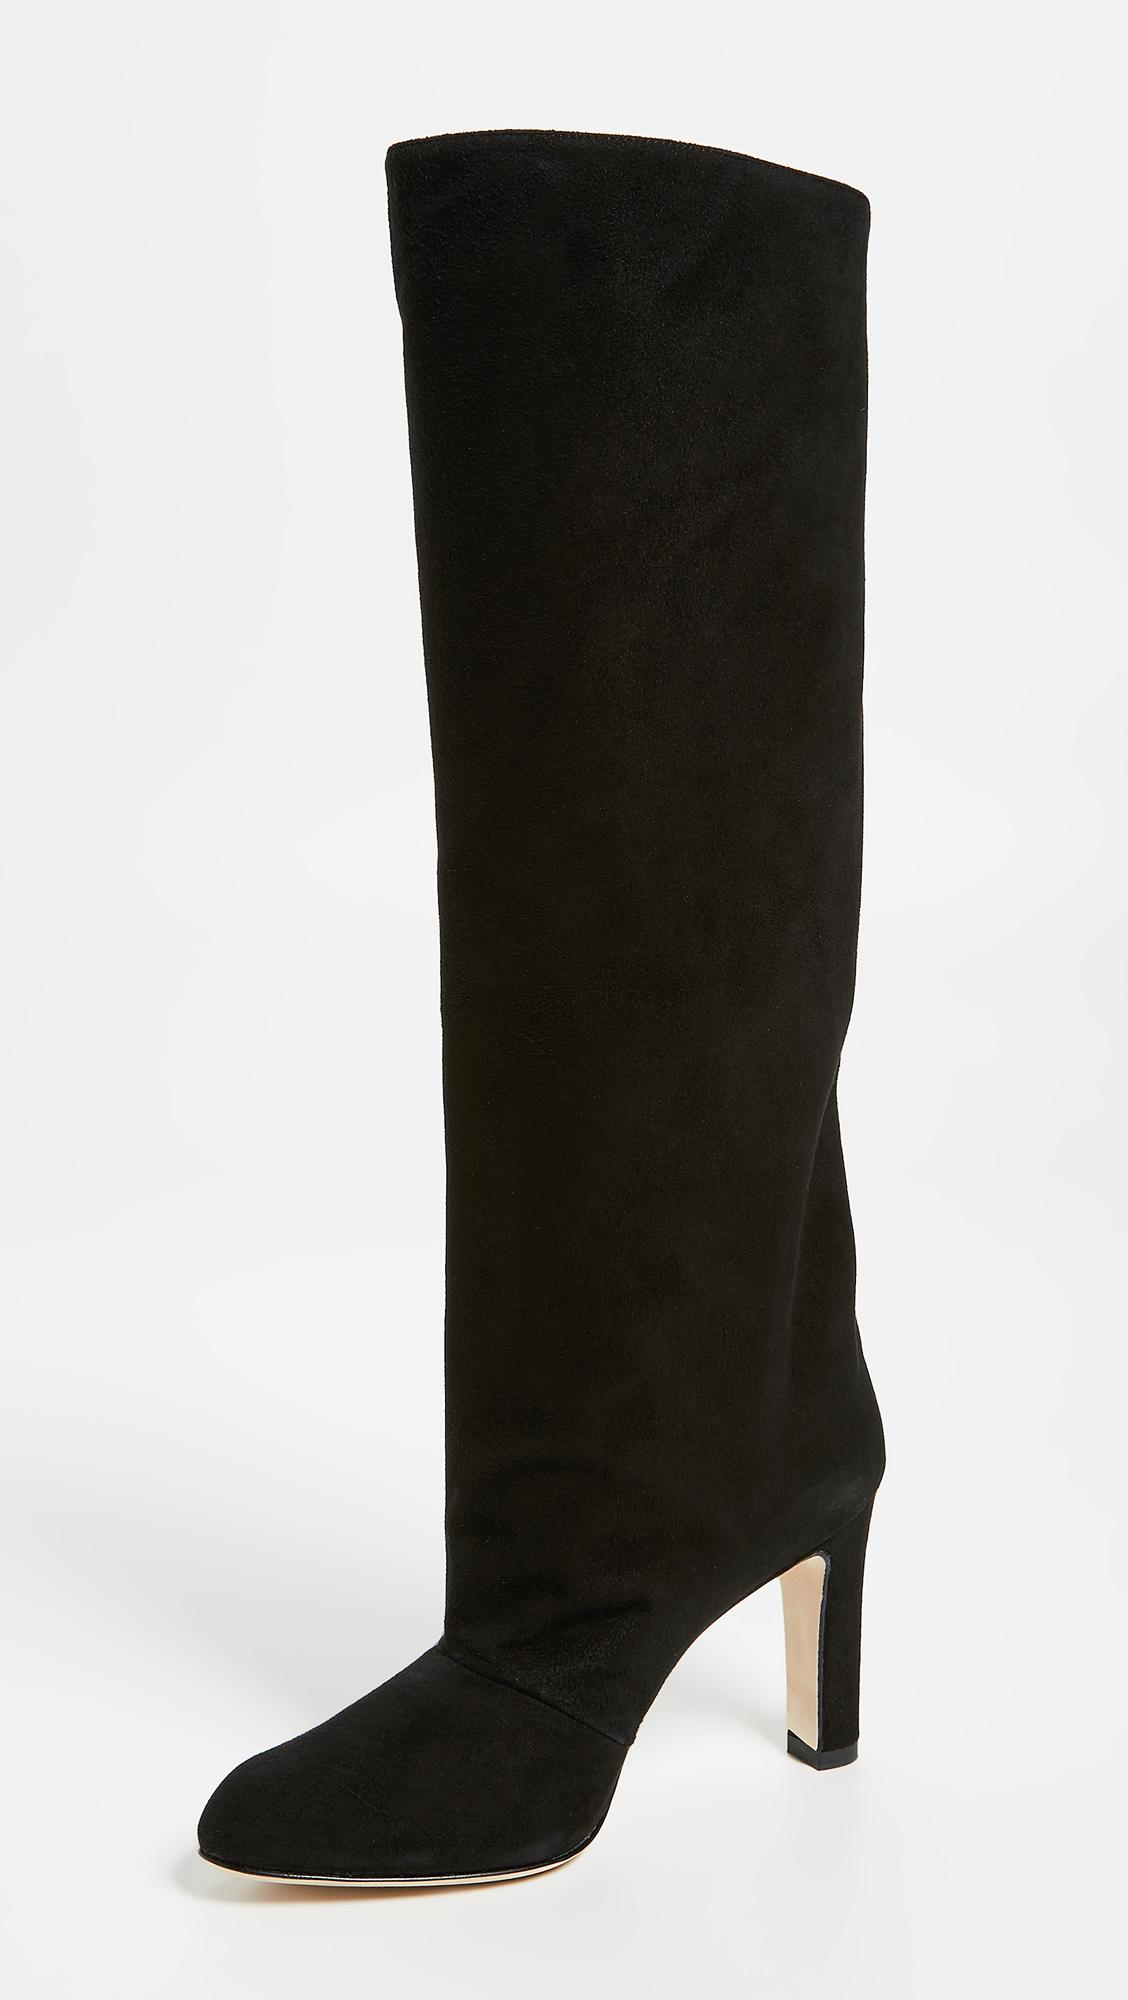 Margar In Tall Marskinryyppy Boots Lyst Black zw57qzC